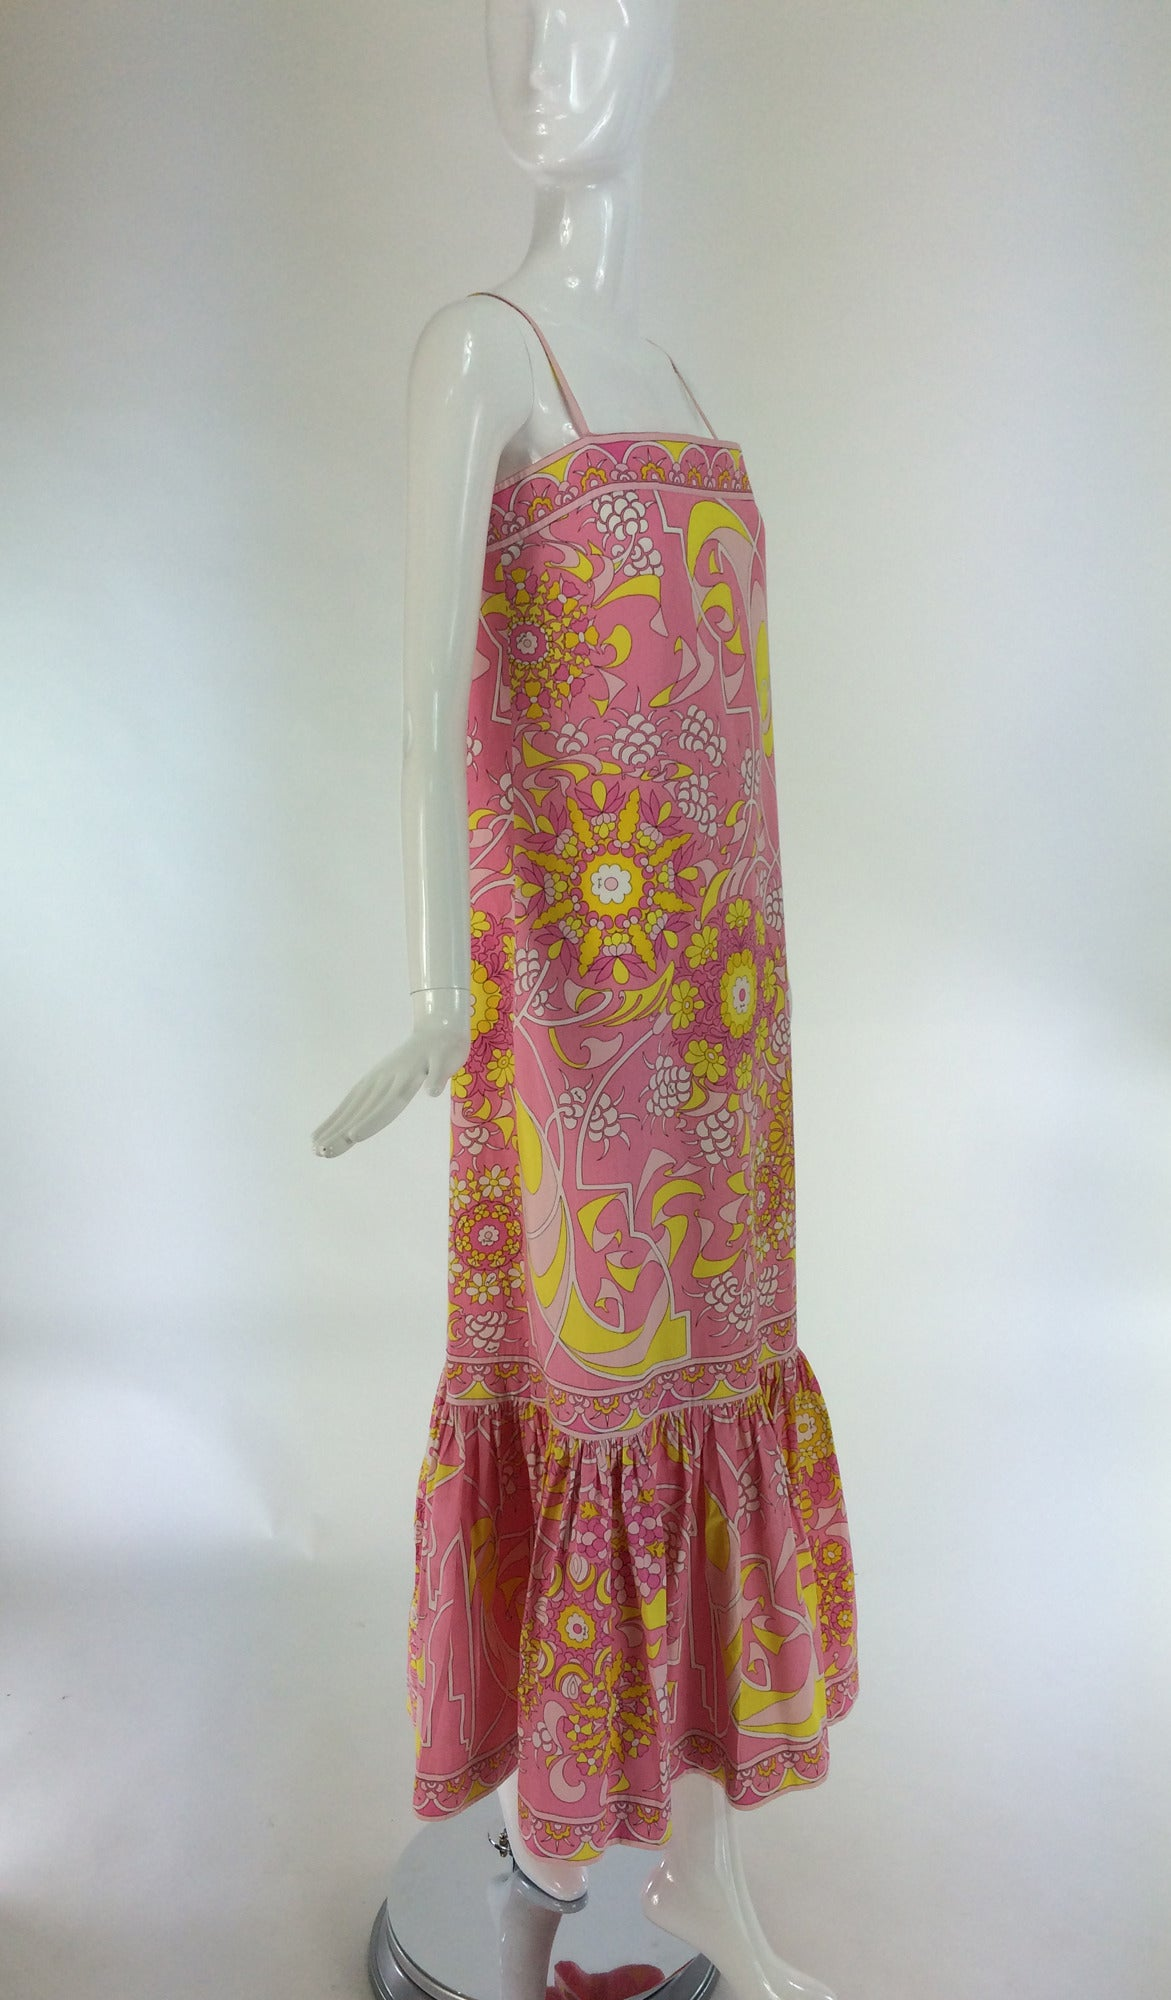 Emilio Pucci printed cotton maxi dress out of the ordinary design 1960s 4